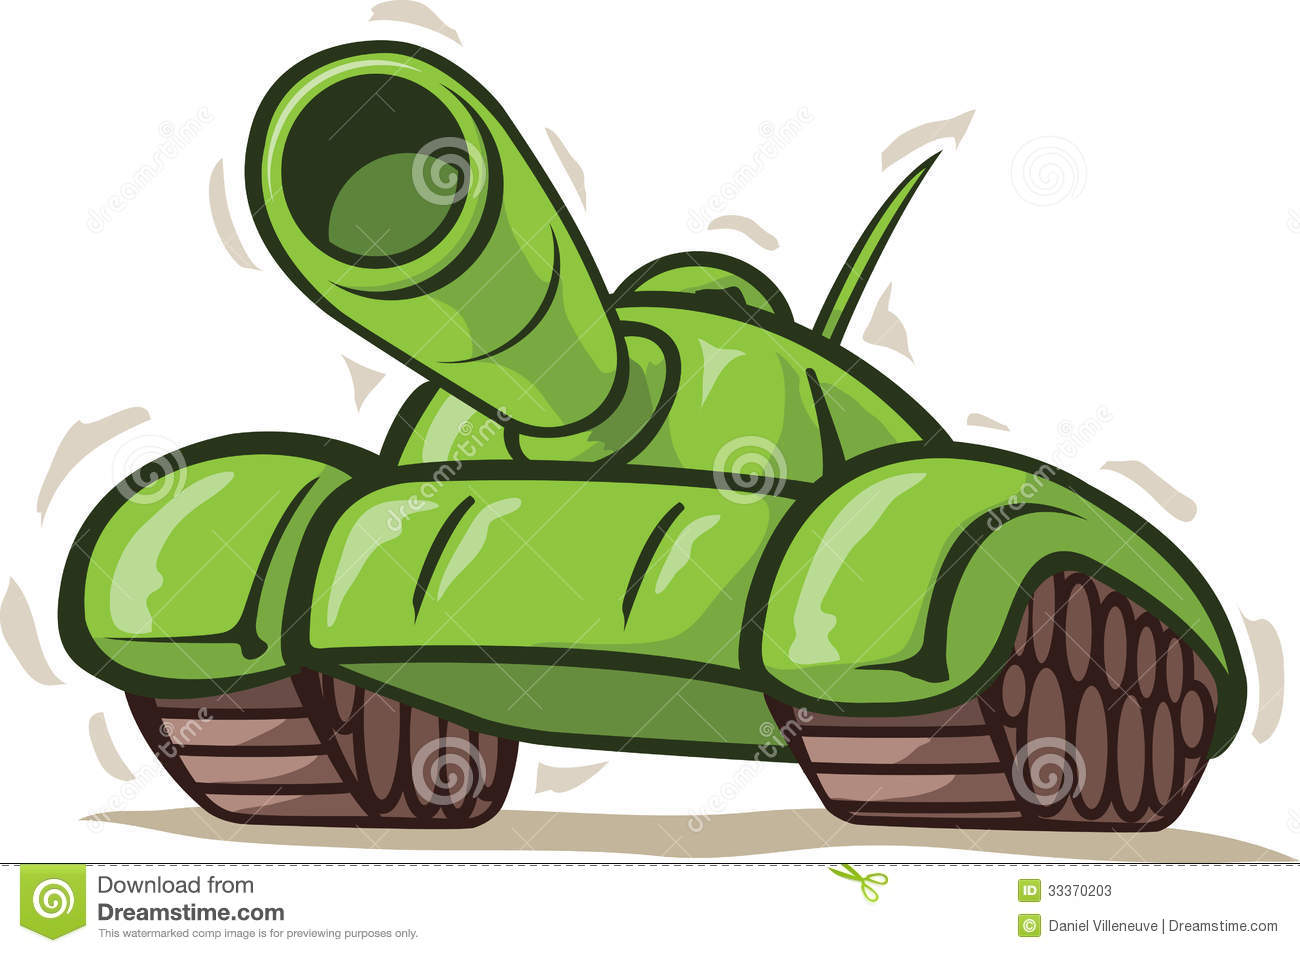 Cute Tank Stock Photos - Image: 33370203